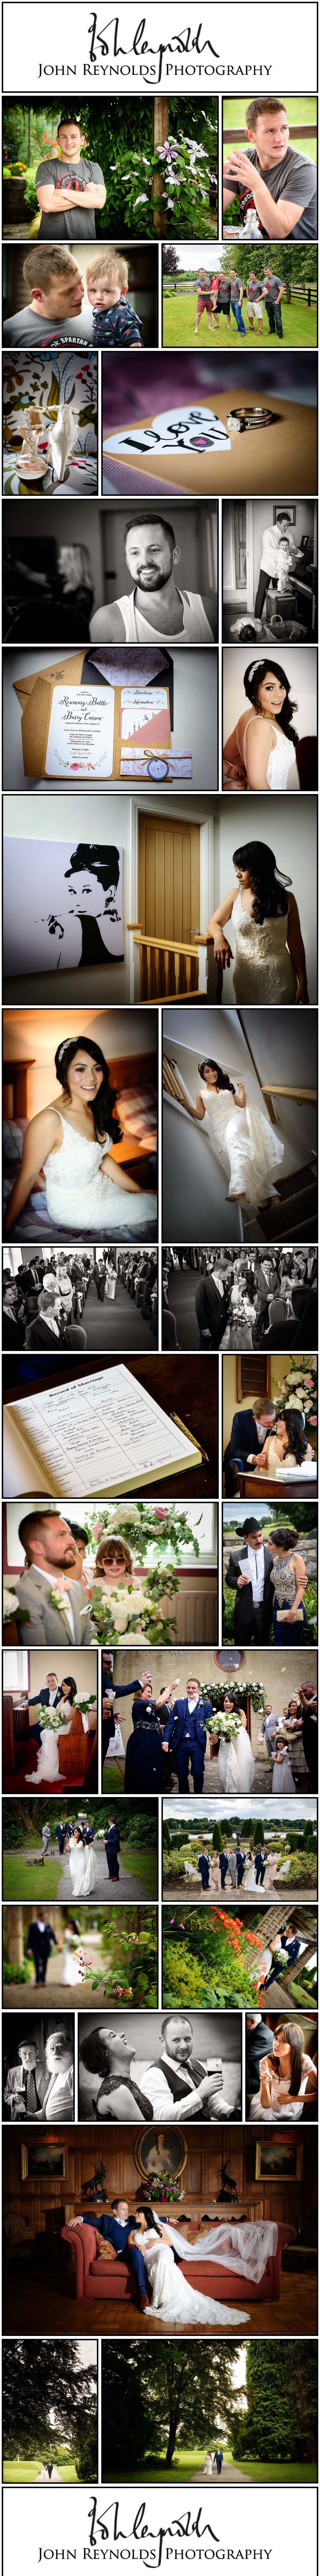 Blog Collage-Rosie & Barry